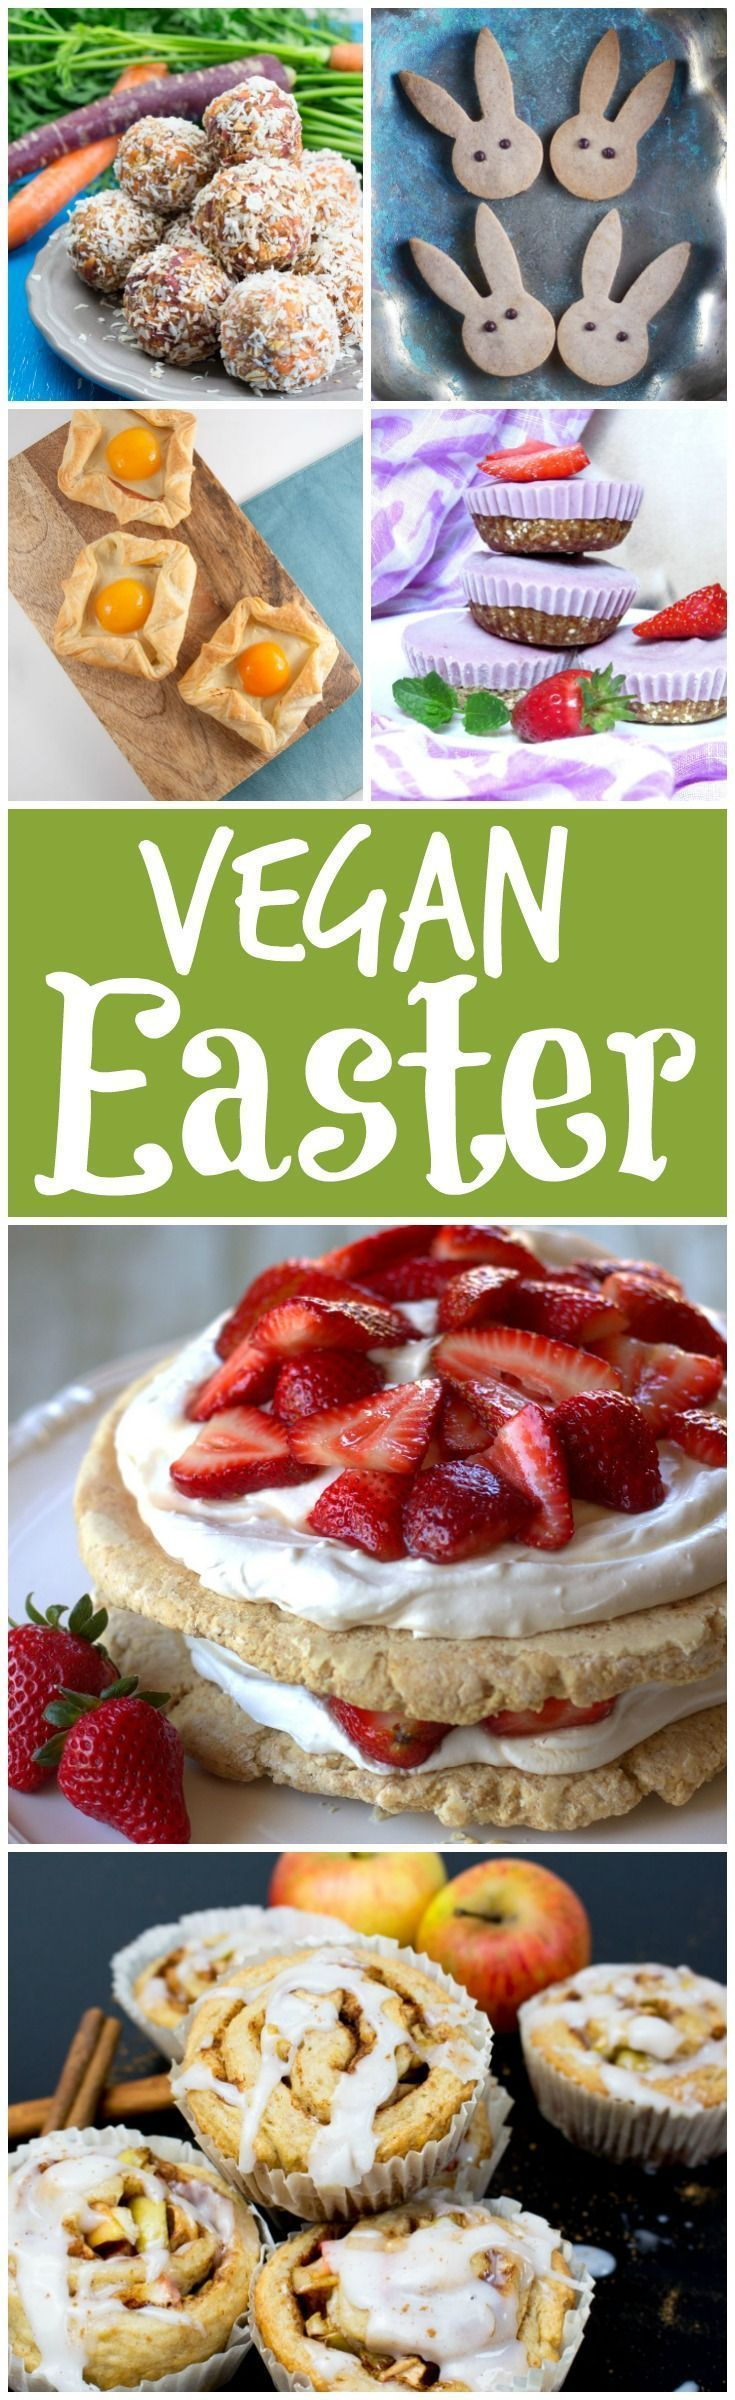 15 delicious vegan easter recipes that will please the